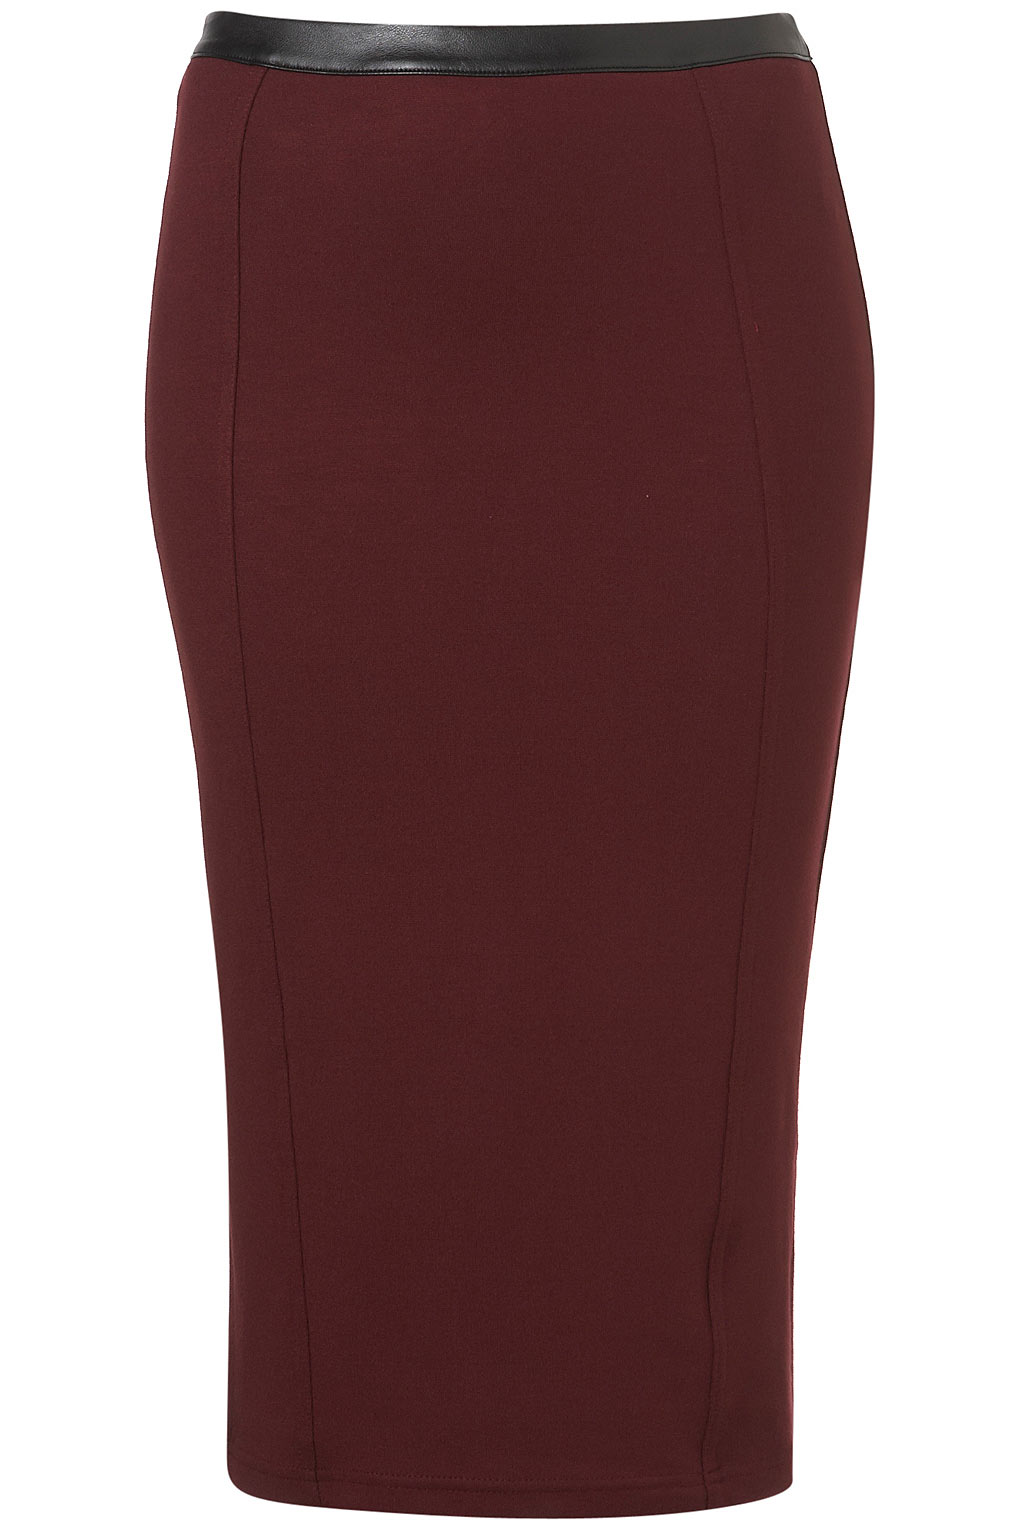 topshop ponte faux leather trim pencil skirt in purple